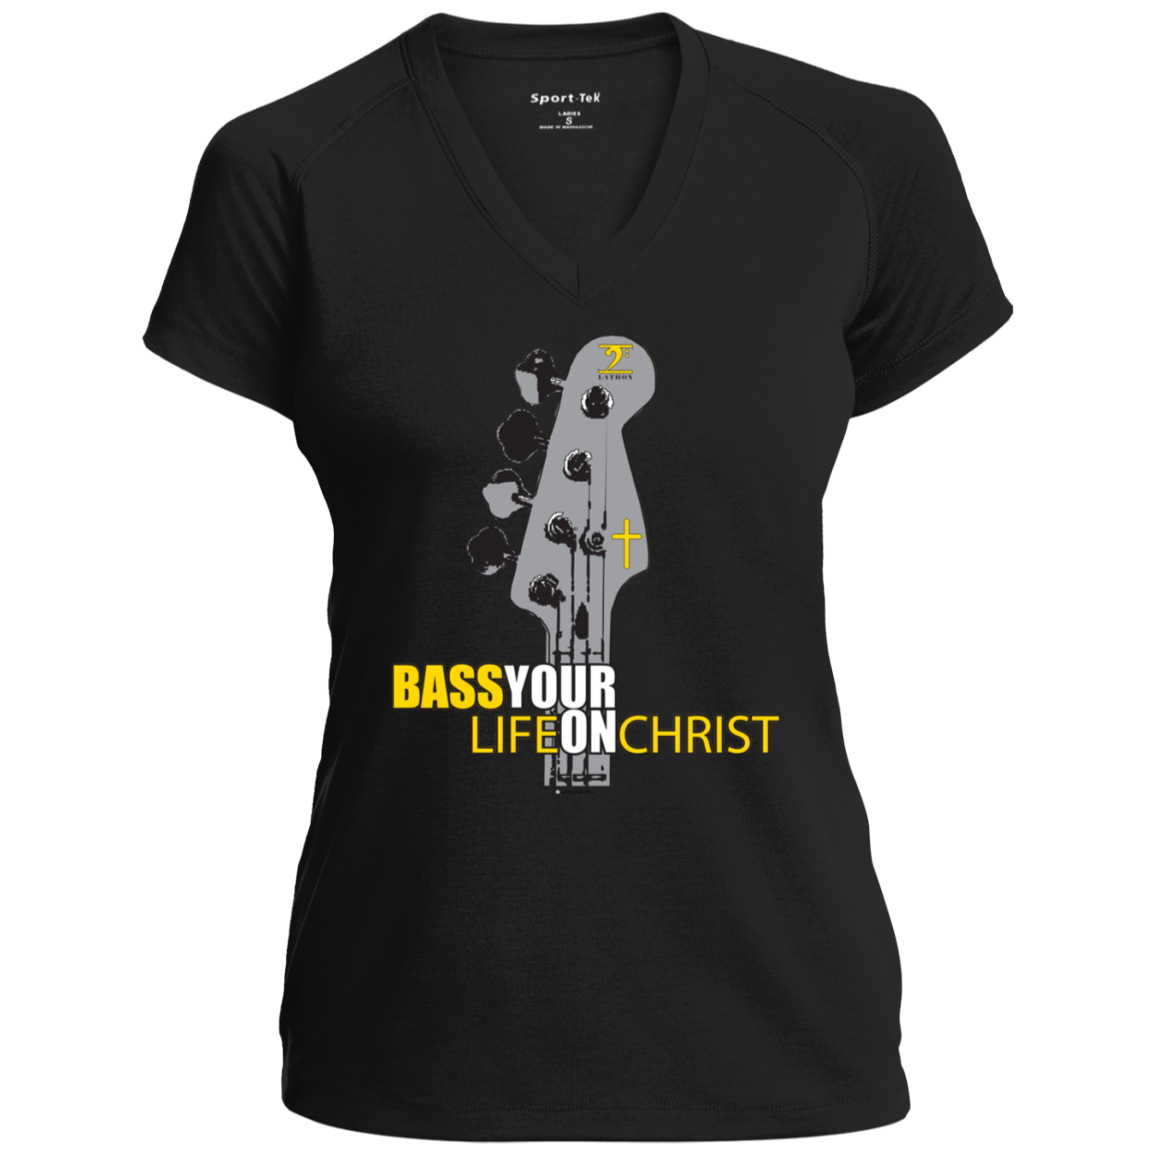 BASS YOUR LIFE ON CHRIST Ladies' Performance T-Shirt - Lathon Bass Wear